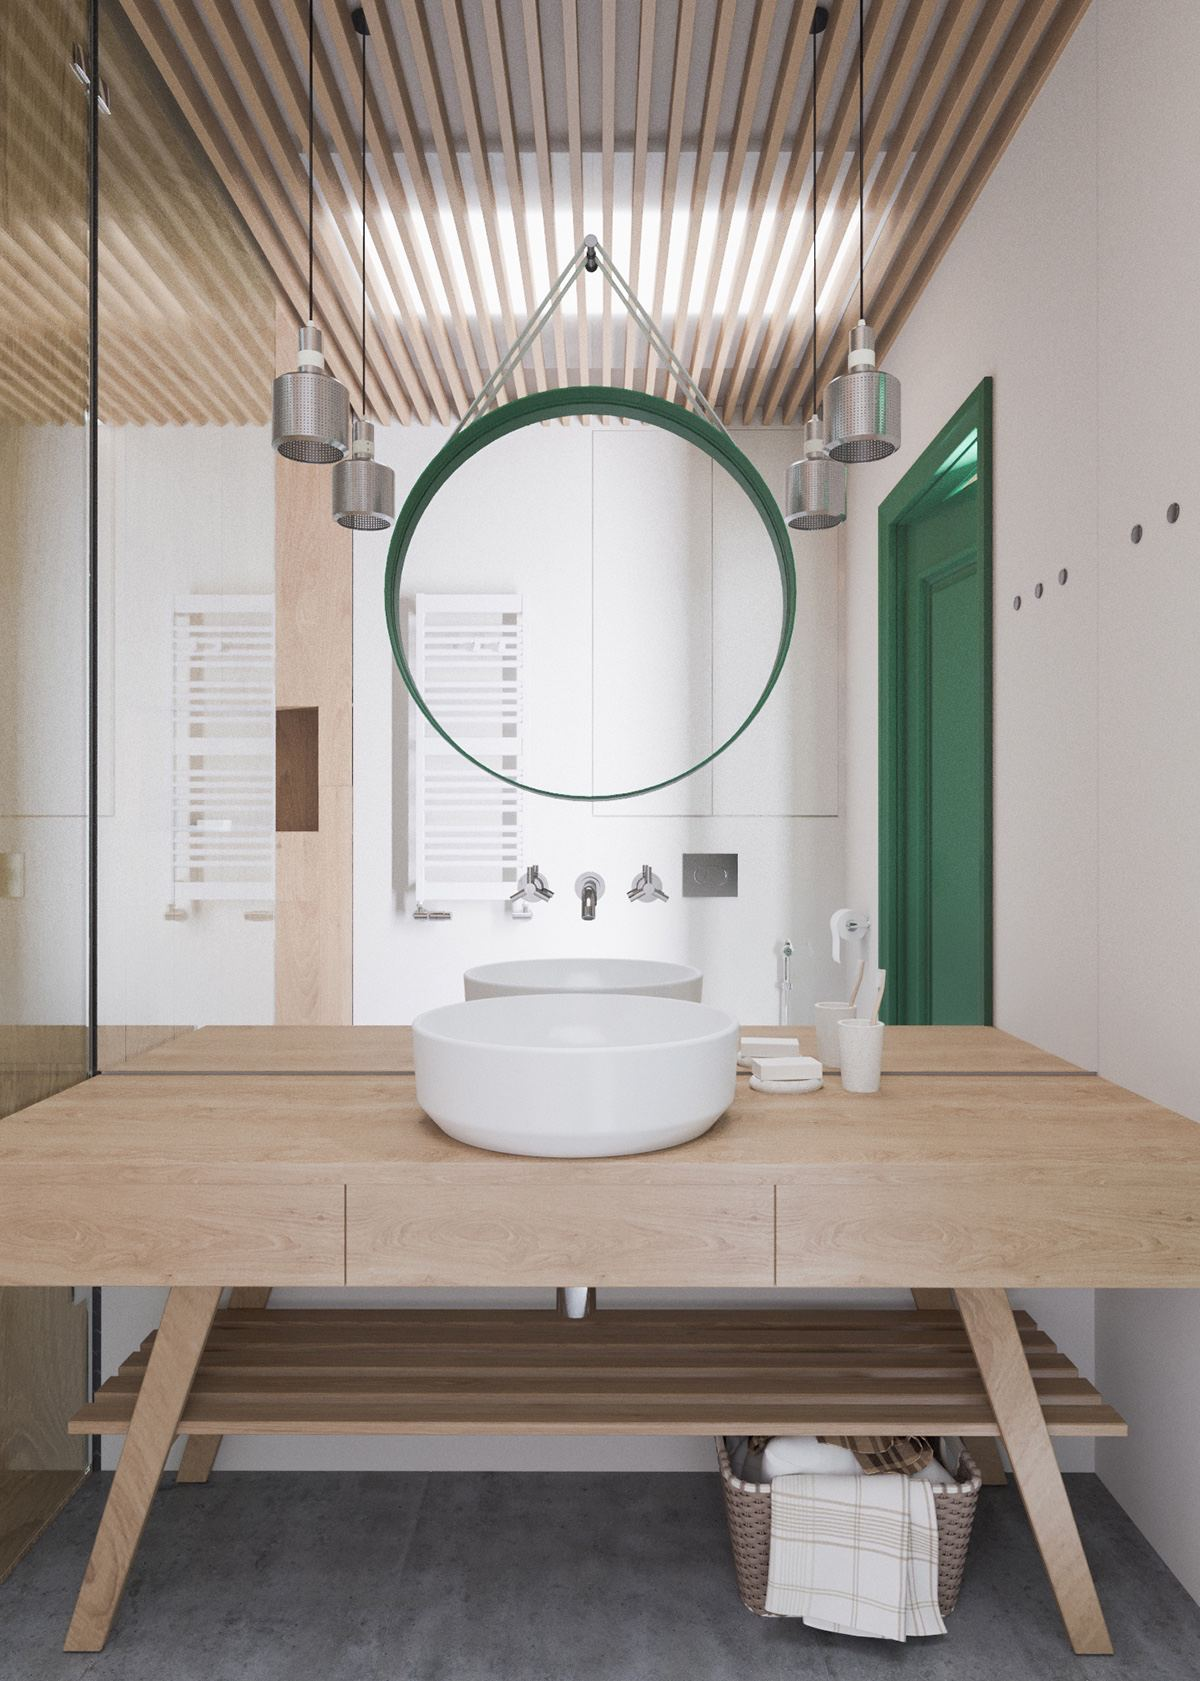 Unique Mirror Inspiration For Bachelor Bathroom - A beautiful one bedroom bachelor apartment under 100 square meters with floor plan